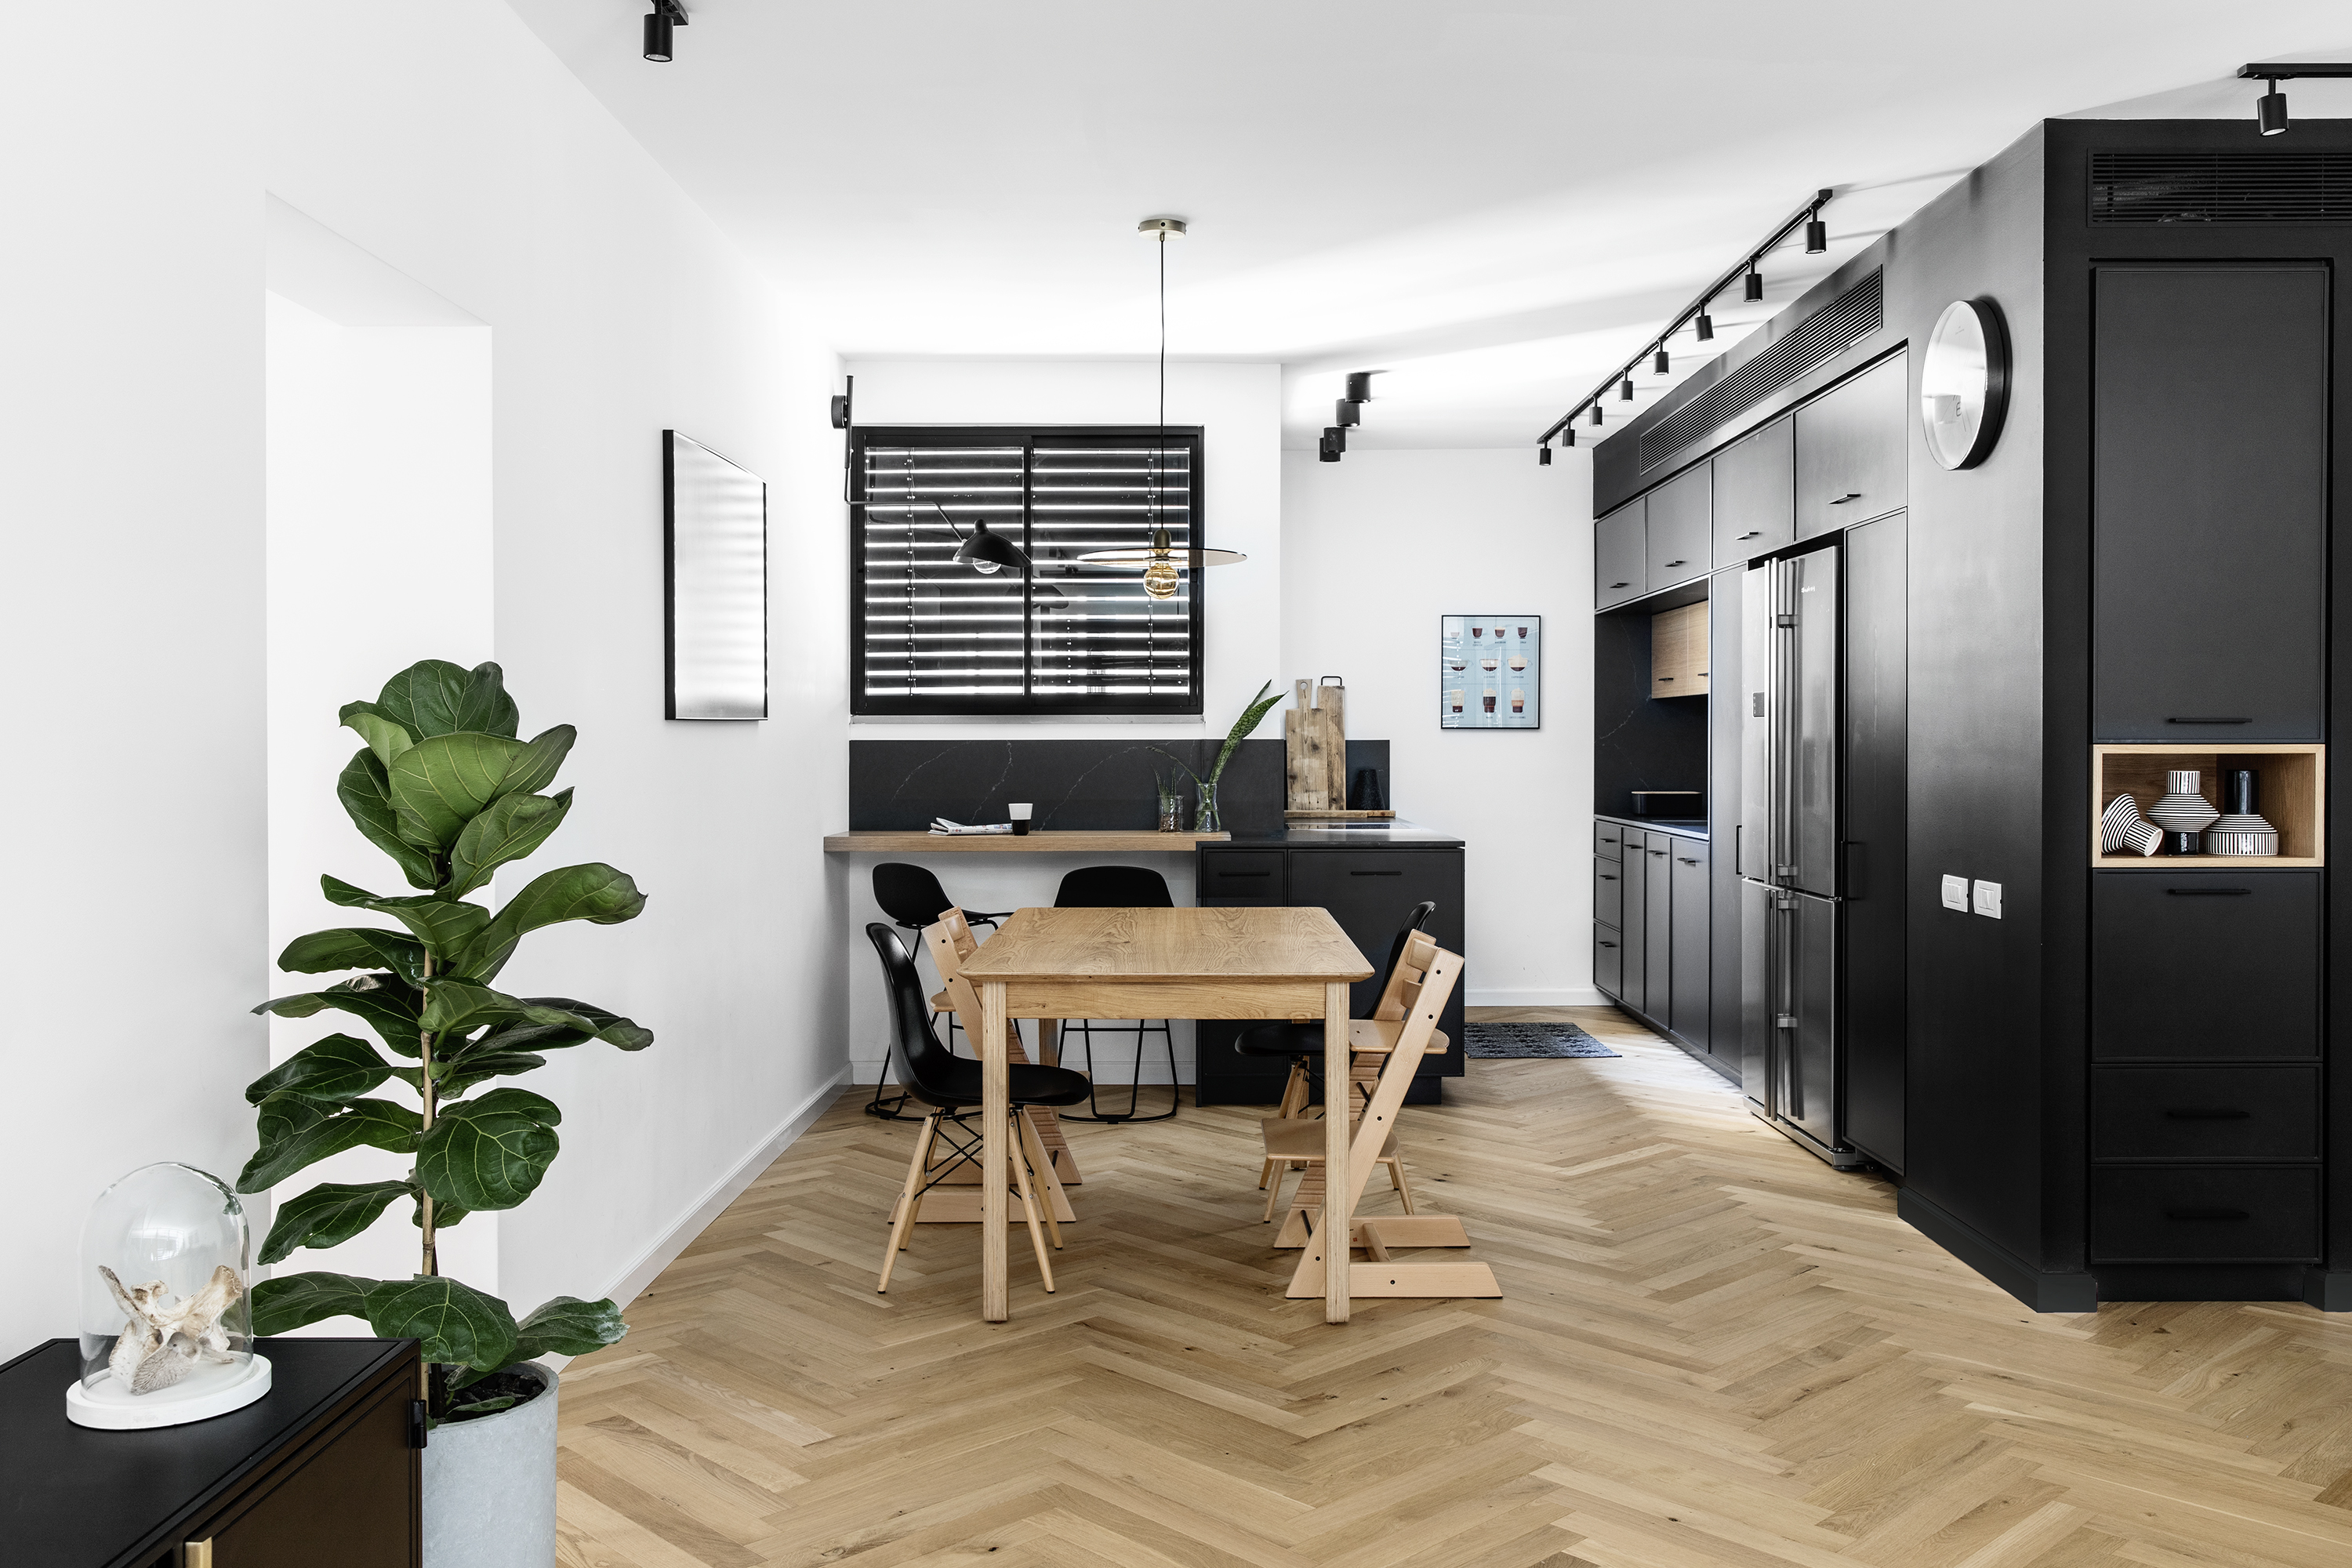 Apartment M&O by Vered Bonfiglioli